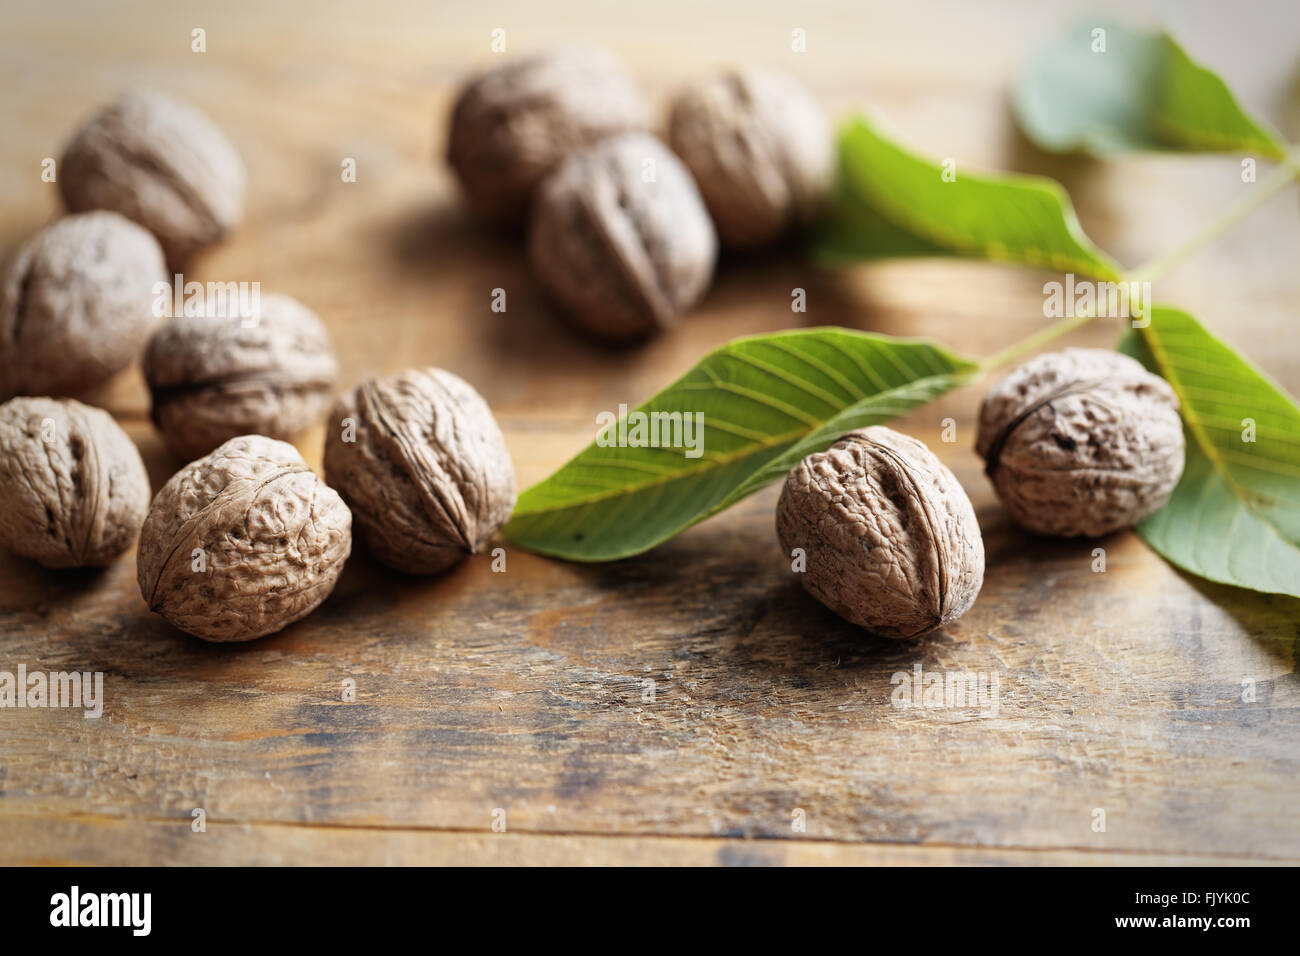 Walnuts on wooden table - Stock Image